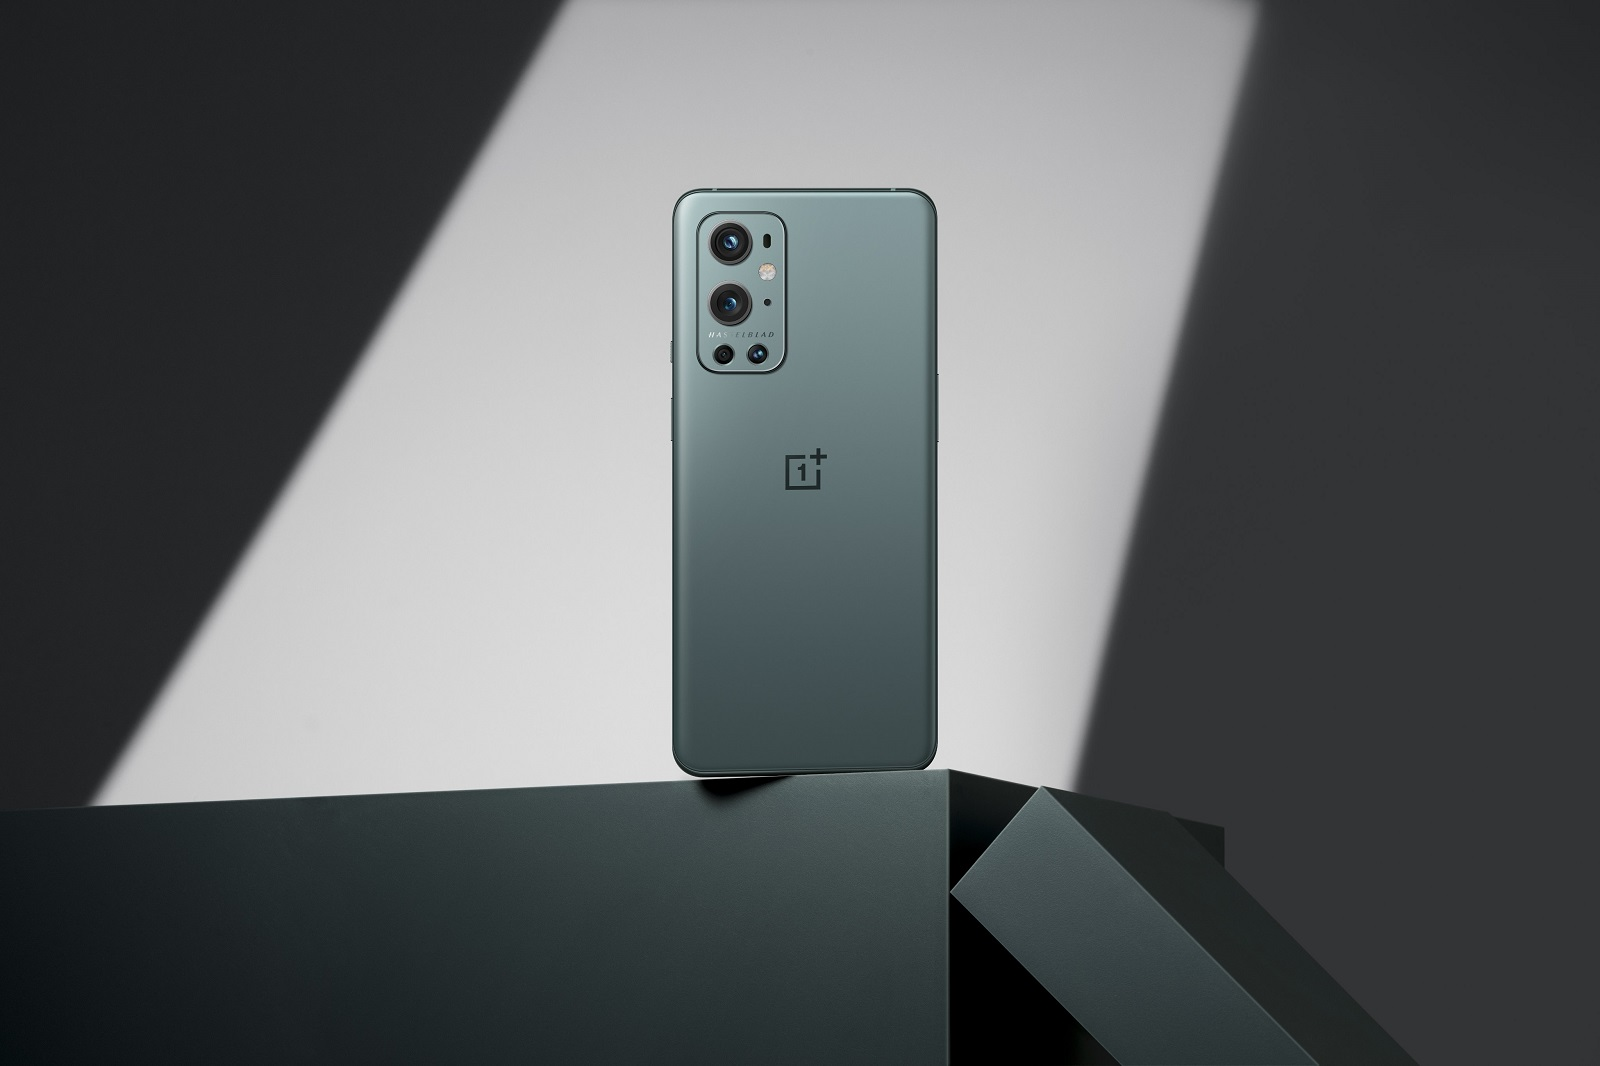 OnePlus 9 live stream: Watch the launch event live right here